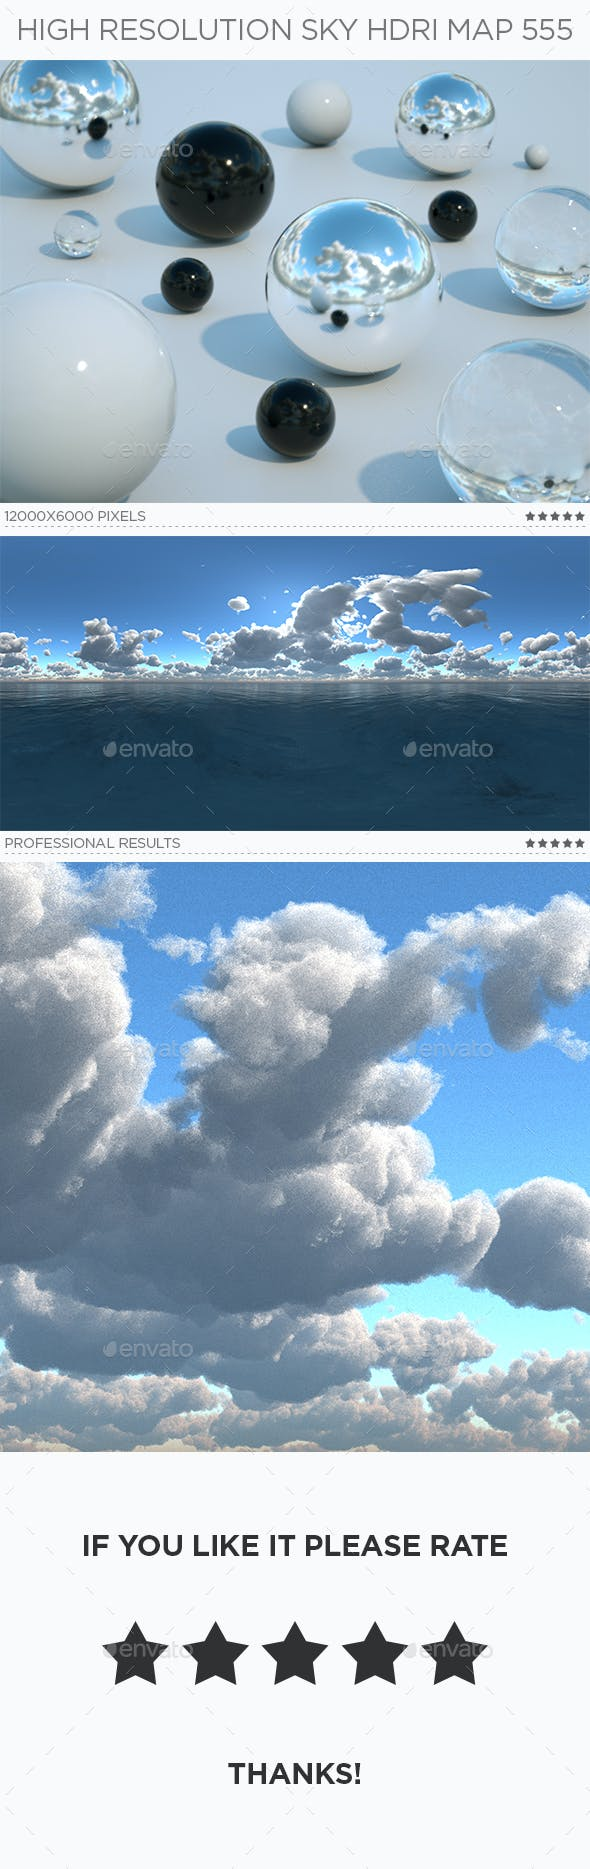 High Resolution Sky HDRi Map 555 - 3DOcean Item for Sale